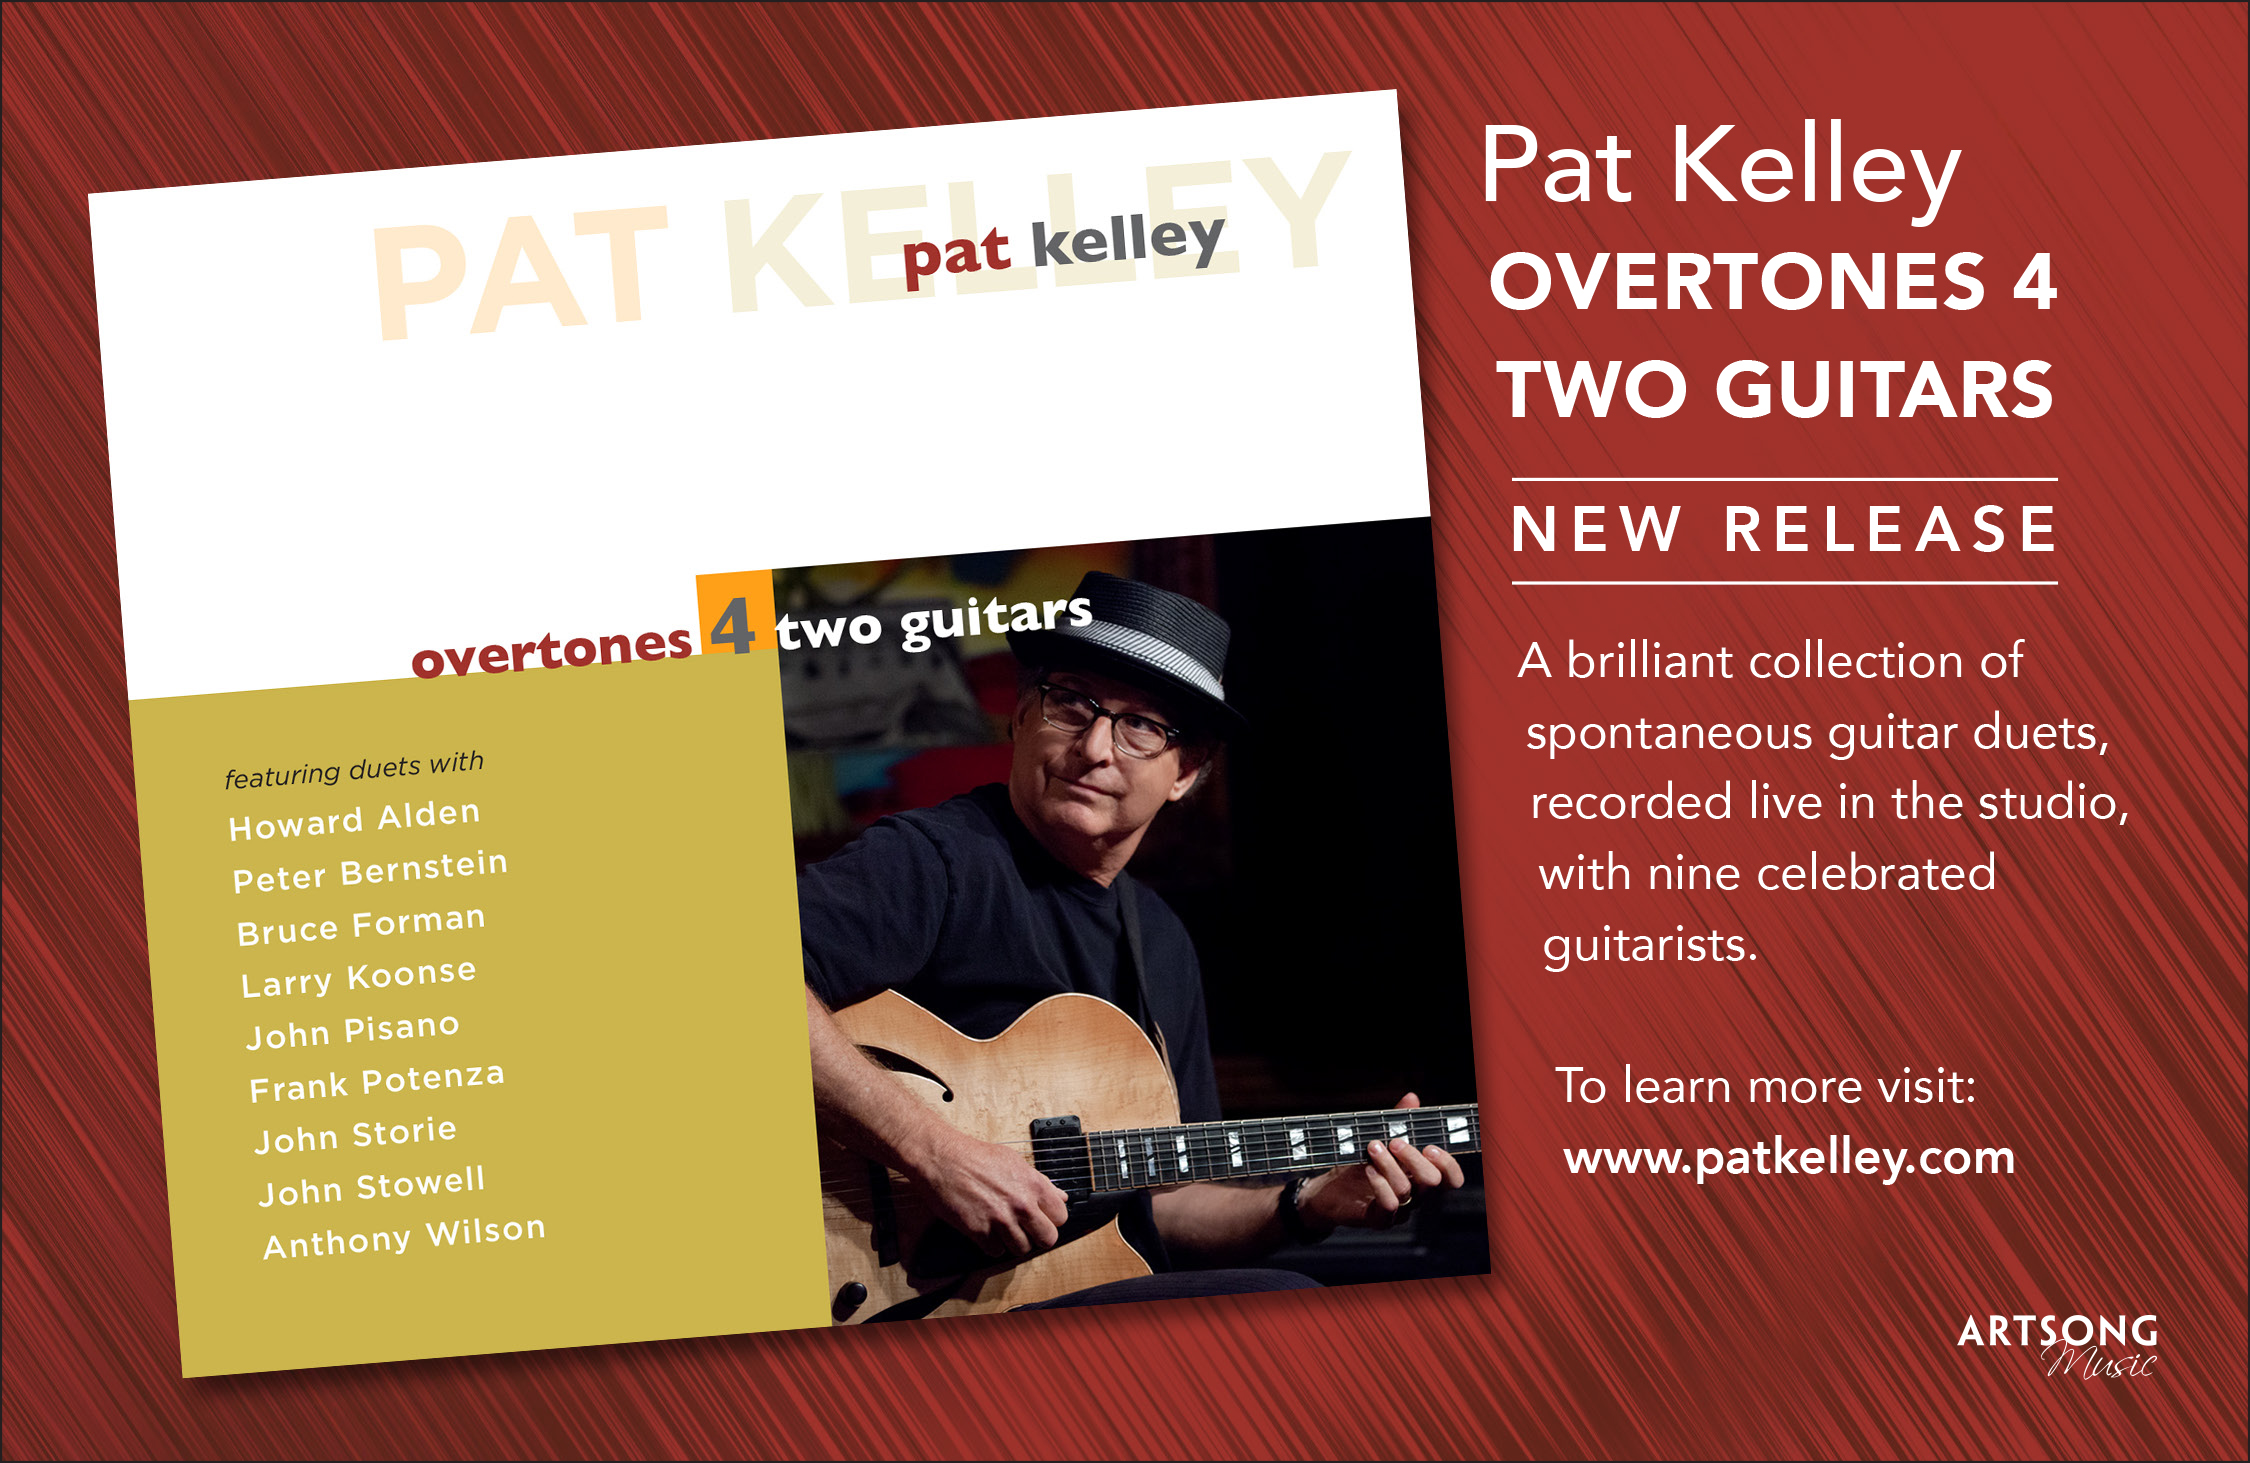 Pat Kelley with Nine Great Guitarists